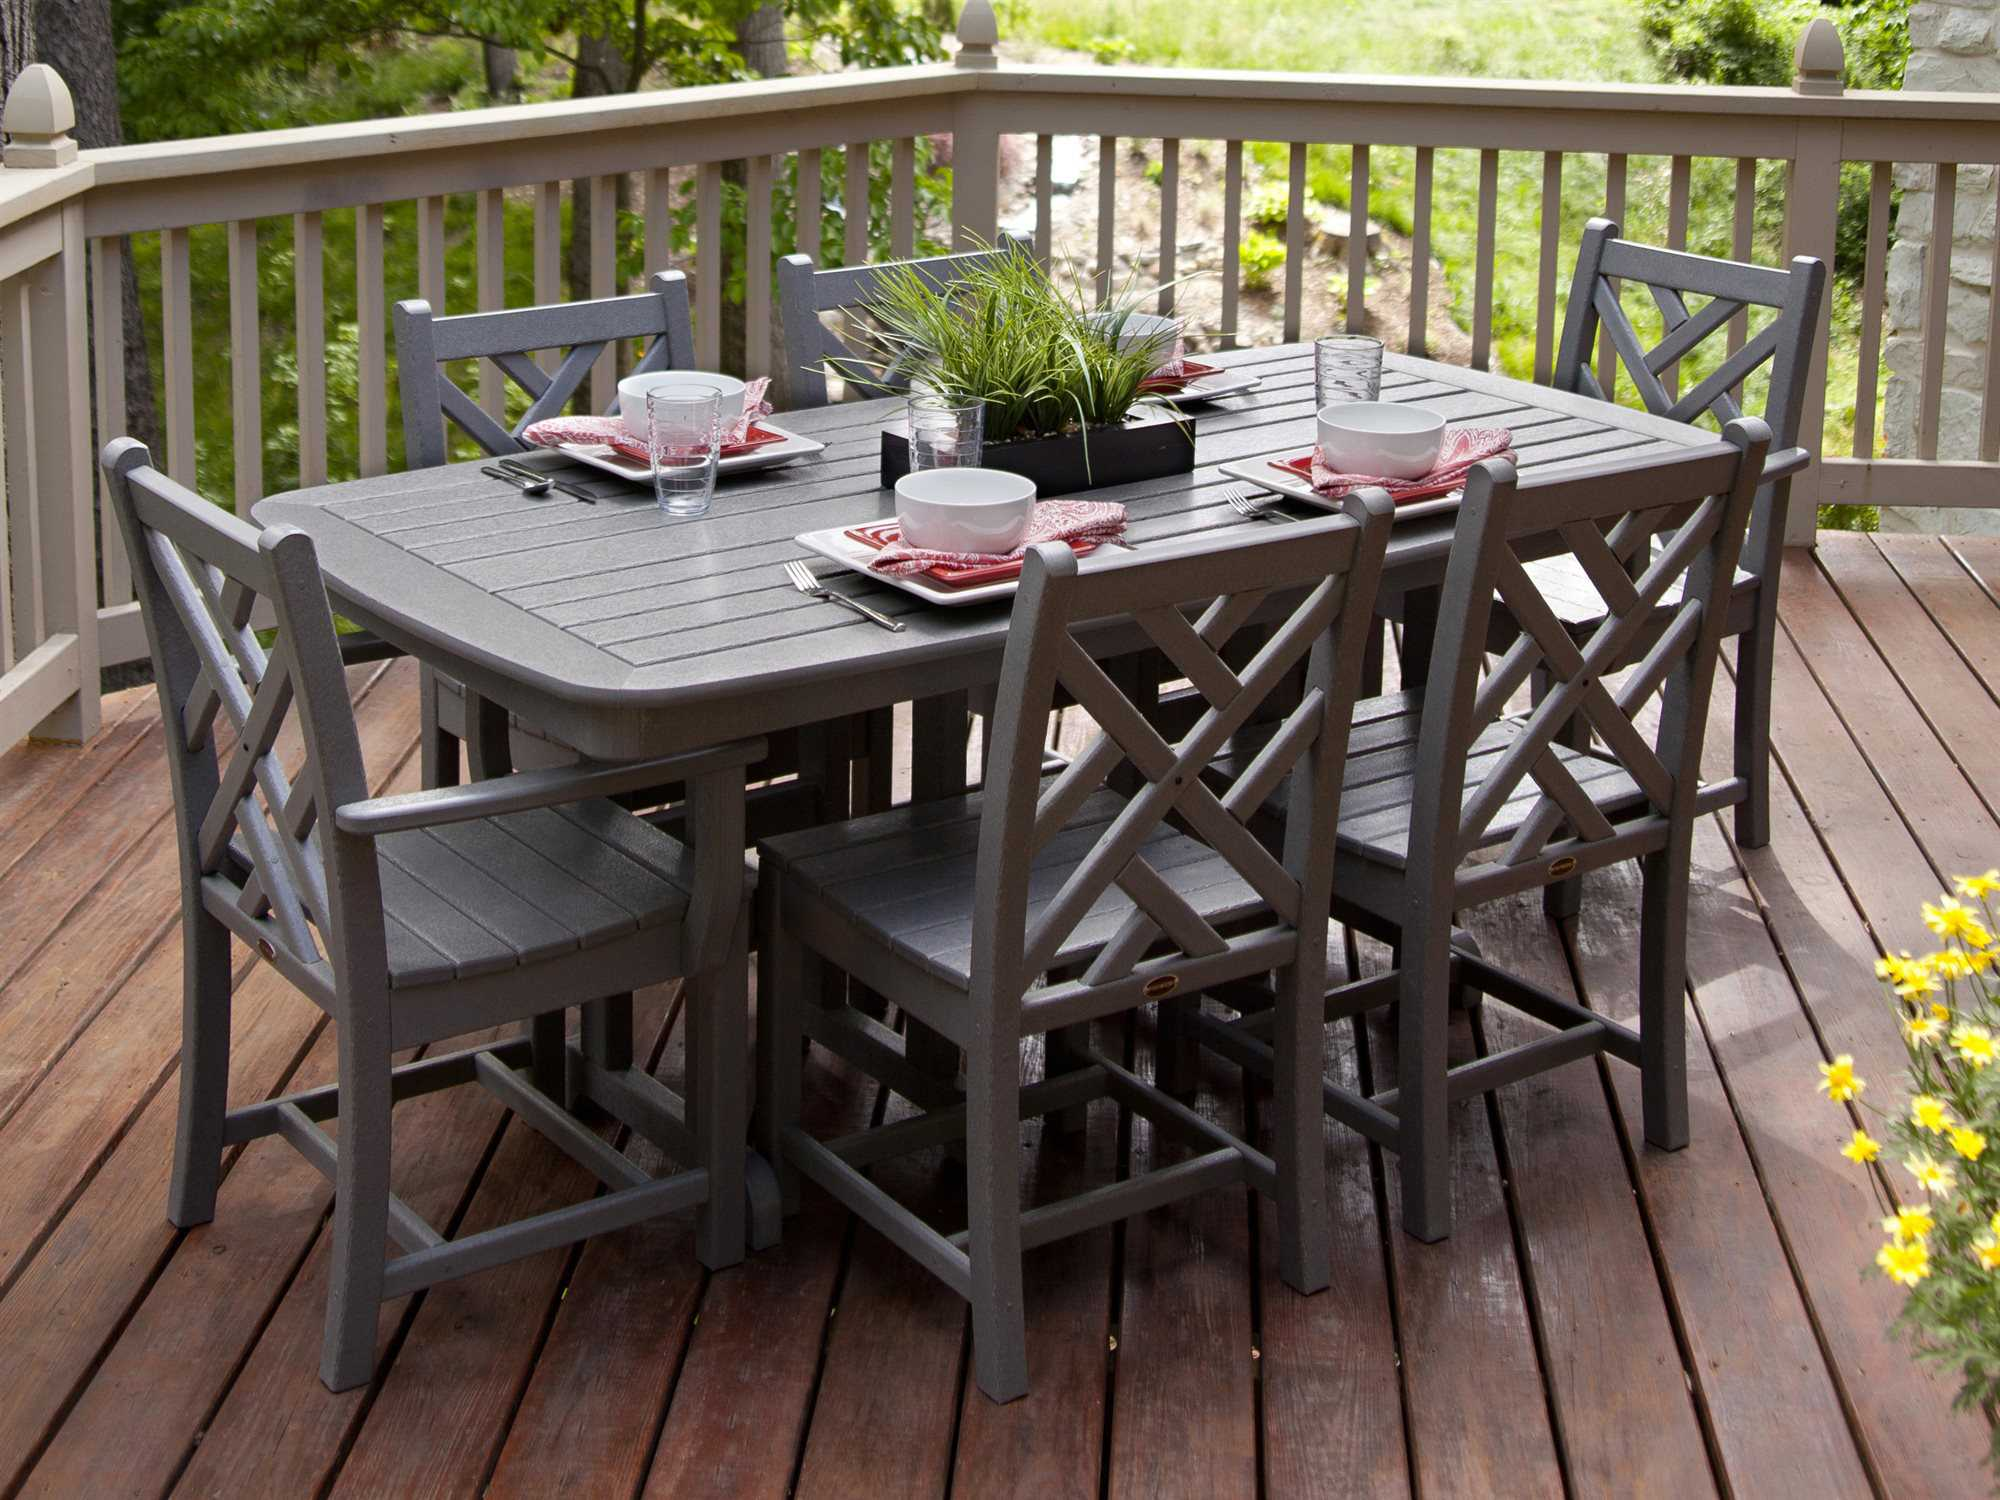 Polywood 174 Nautical Recycled Plastic 72 X 37 Dining Table